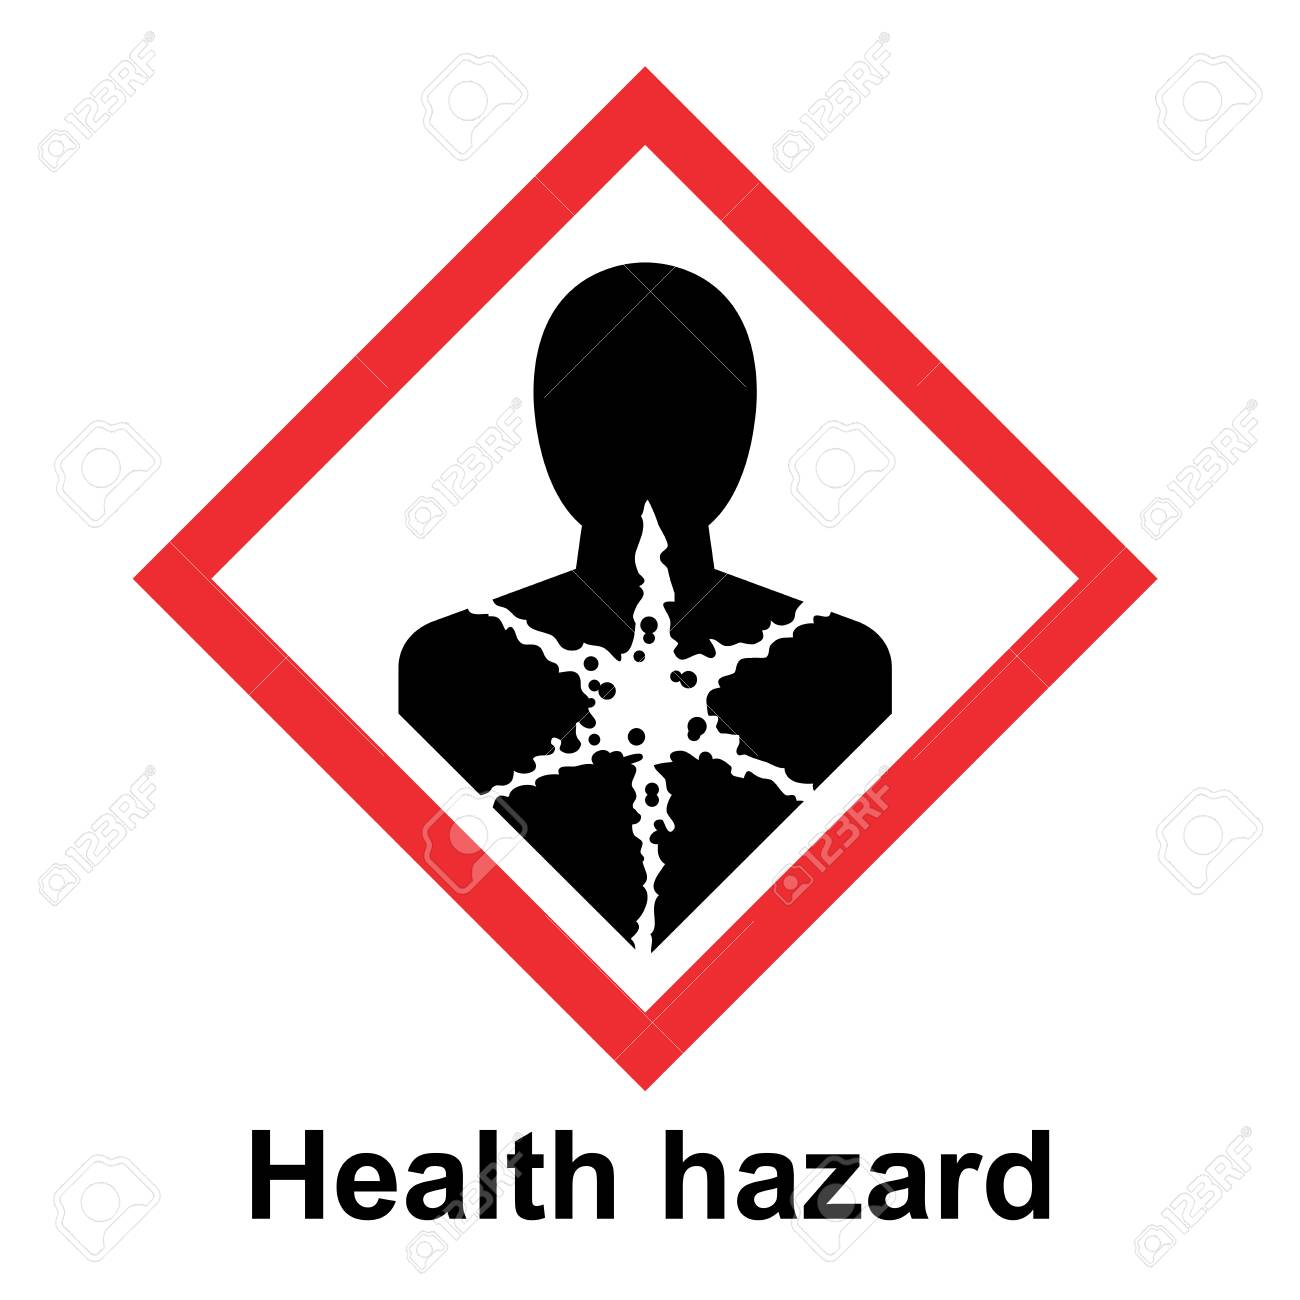 The Globally Harmonized System of Classification and Labeling of Chemicals vector on white background illustration - 117690102